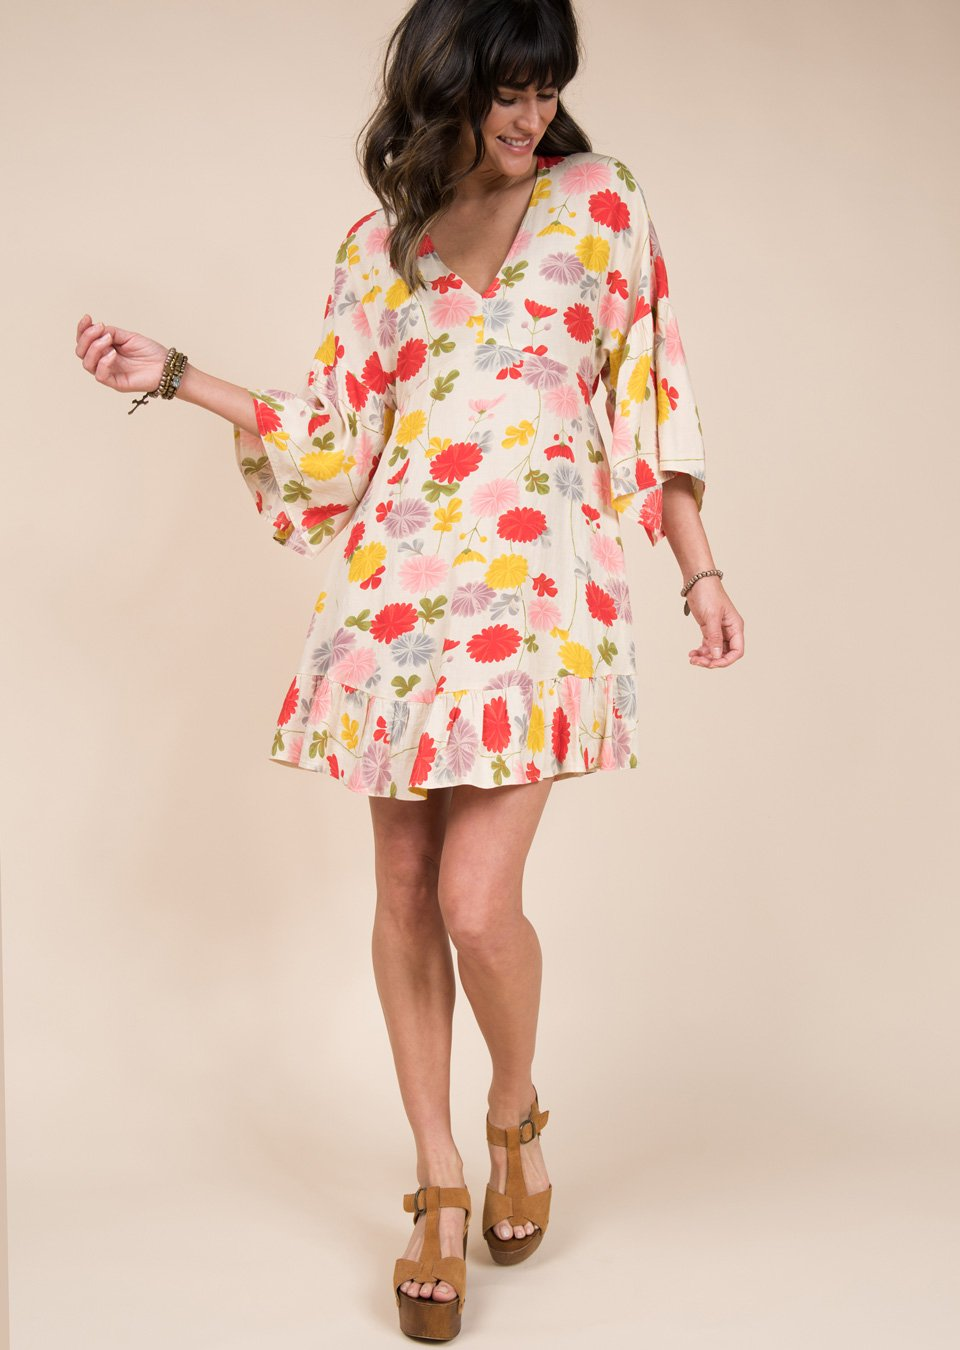 Floral Dolman Dress from Uncle Frank